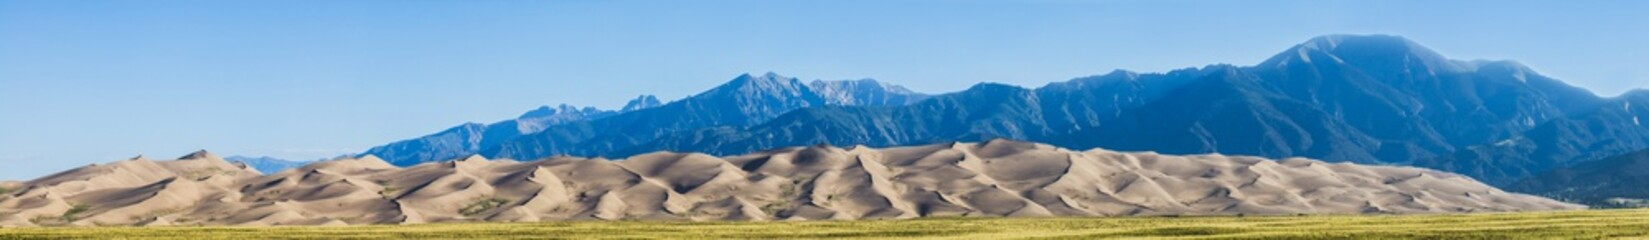 Panoramic view of the sand dunes and Sangre de Cristo Mountains in Great Sand Dunes National Park and Preserve; Colorado, United States of America